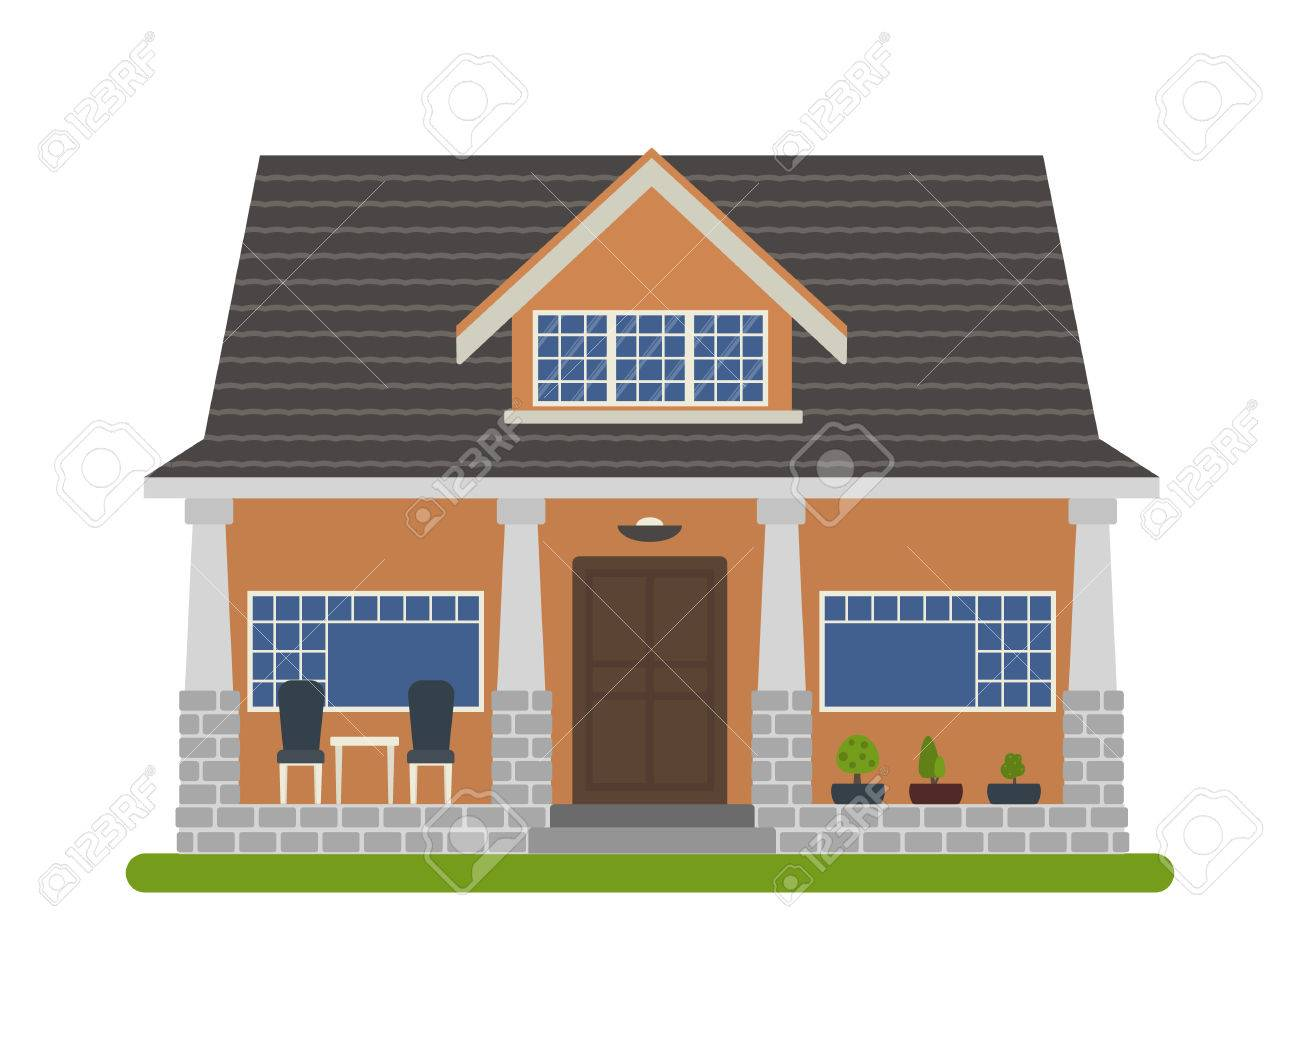 Modern Bungalow Style House Vector Illustration Of A Tourist Royalty Free Cliparts Vectors And Stock Illustration Image 69818223